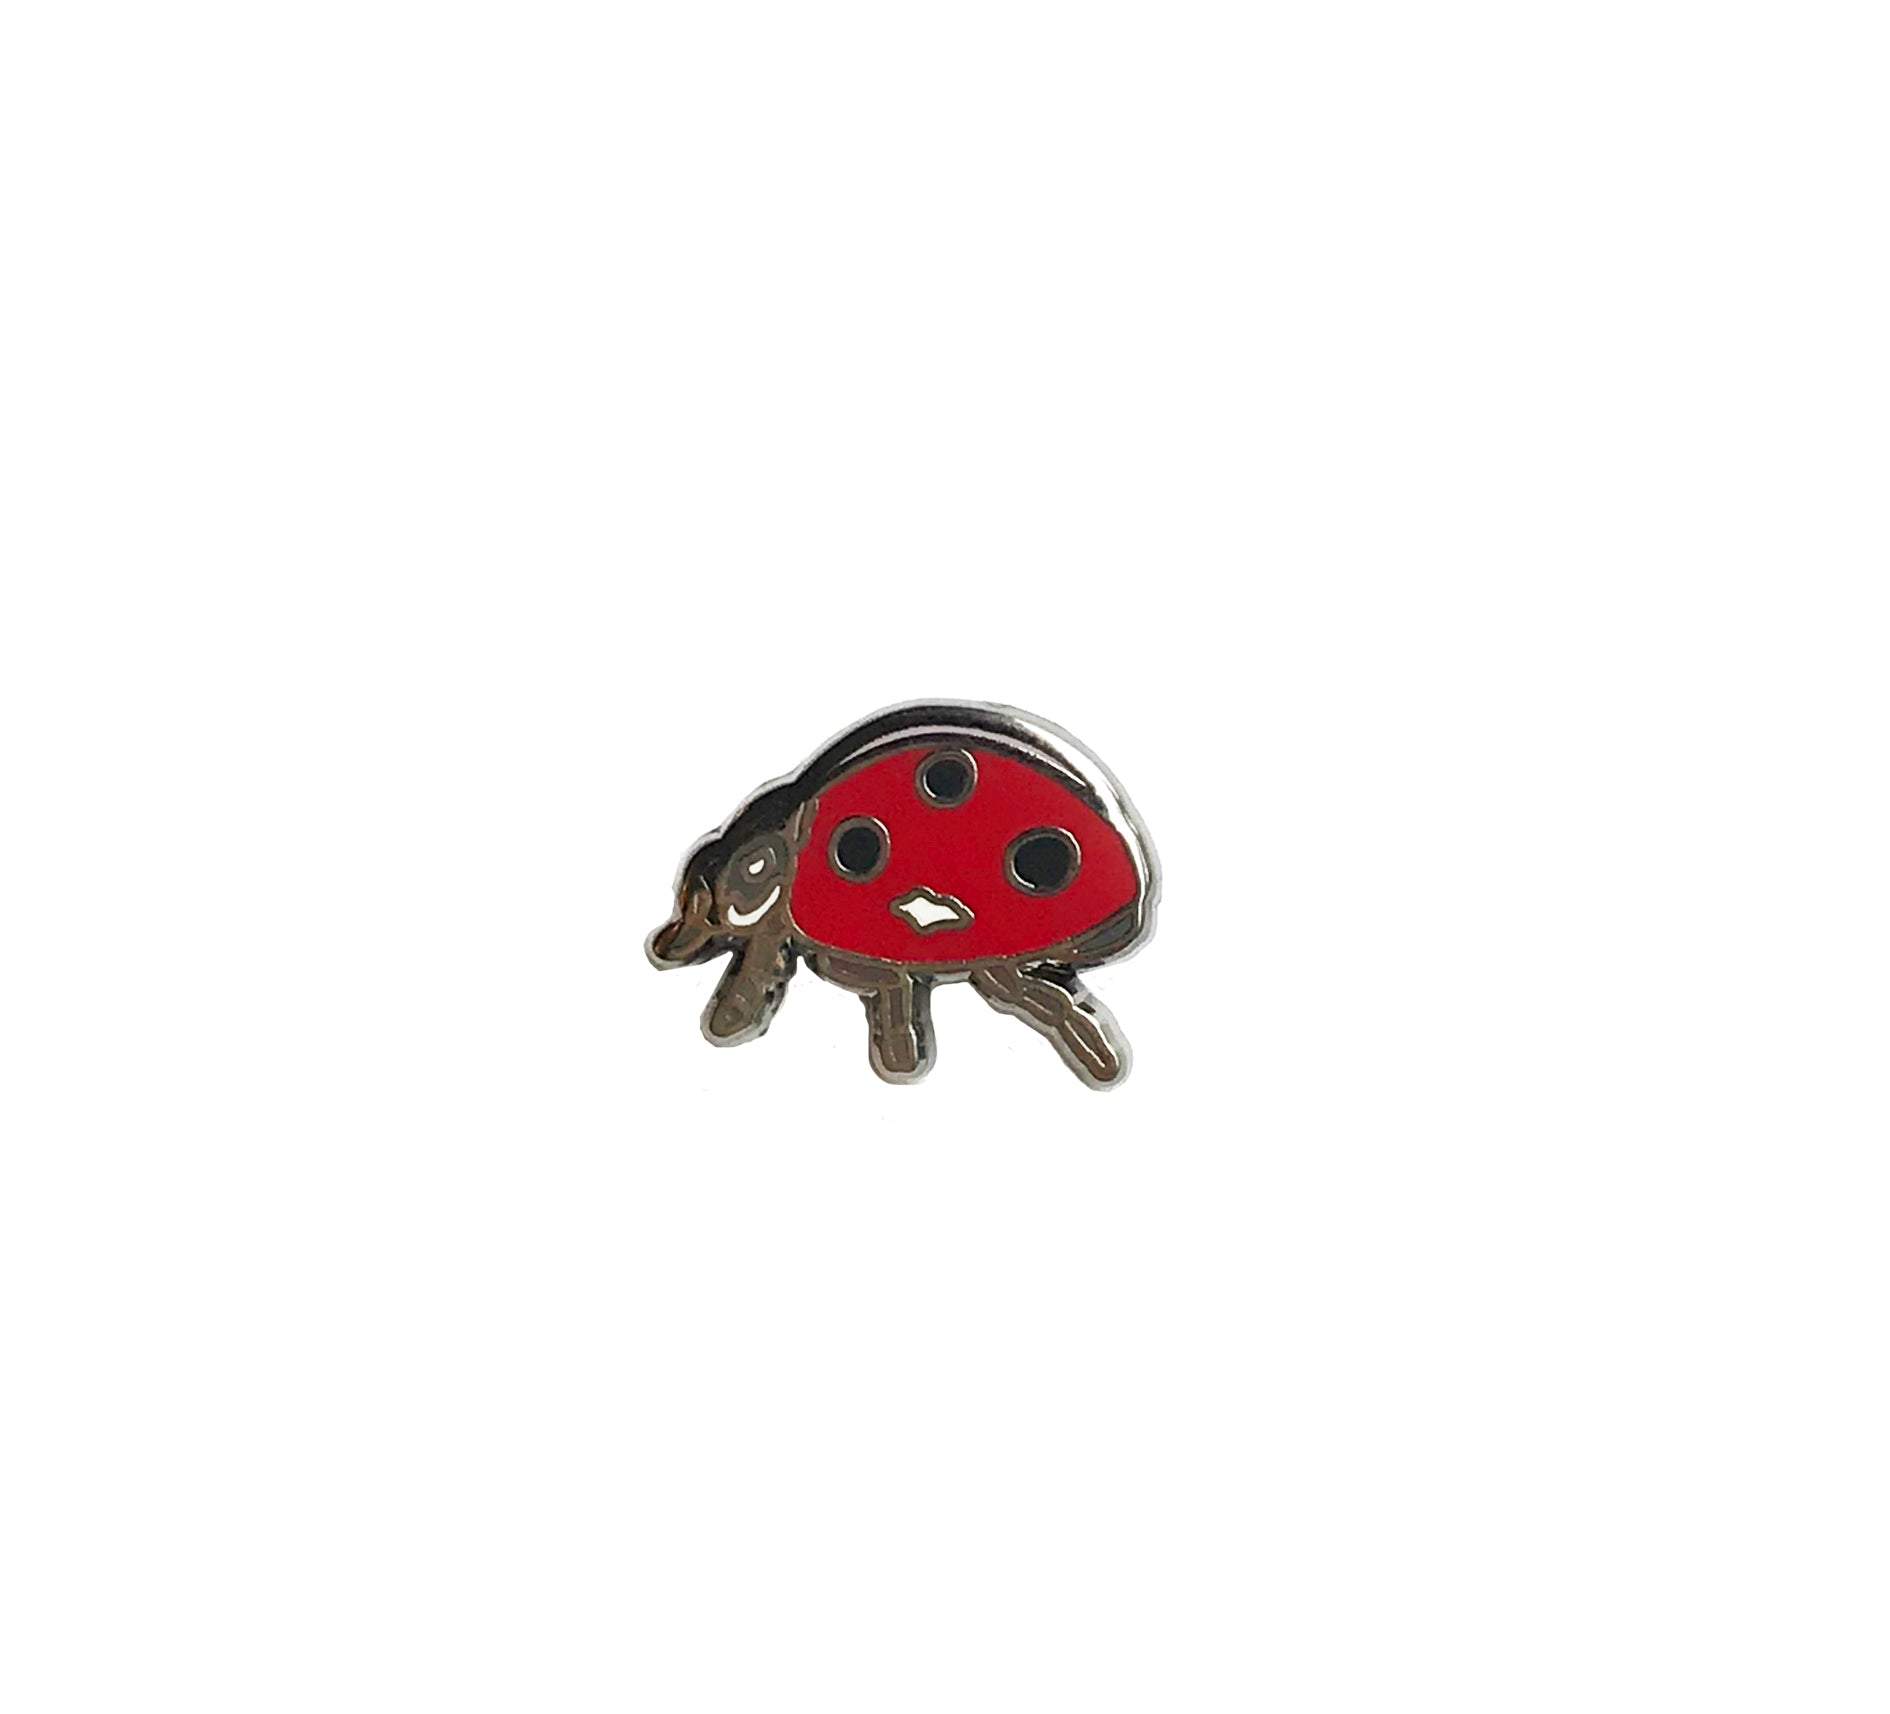 Enamel Pin - Ladybug - Natural Values